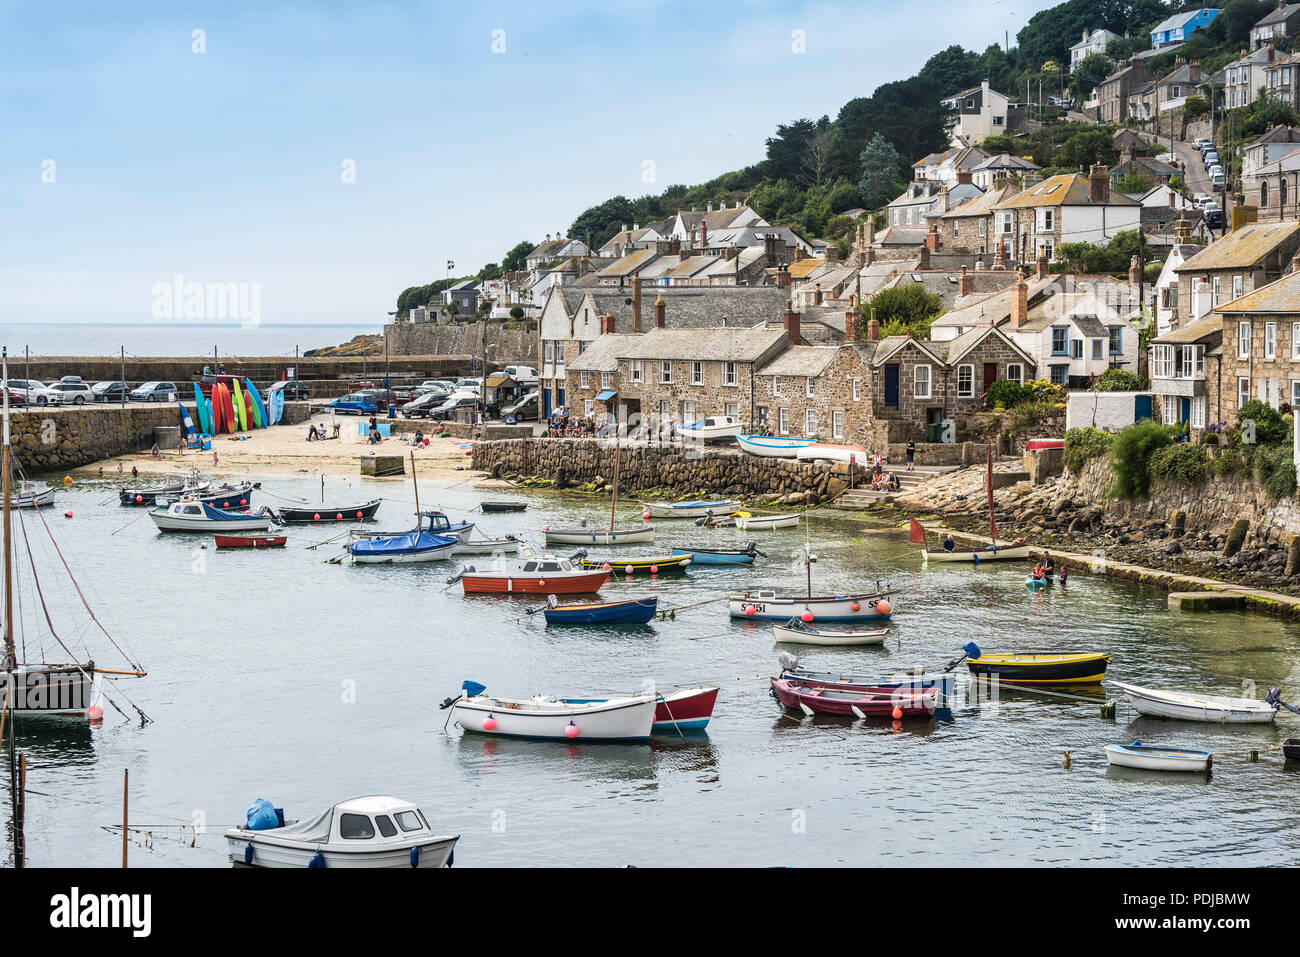 Small boats moored in the quaint harbour in Mousehole in Cornwall. - Stock Image